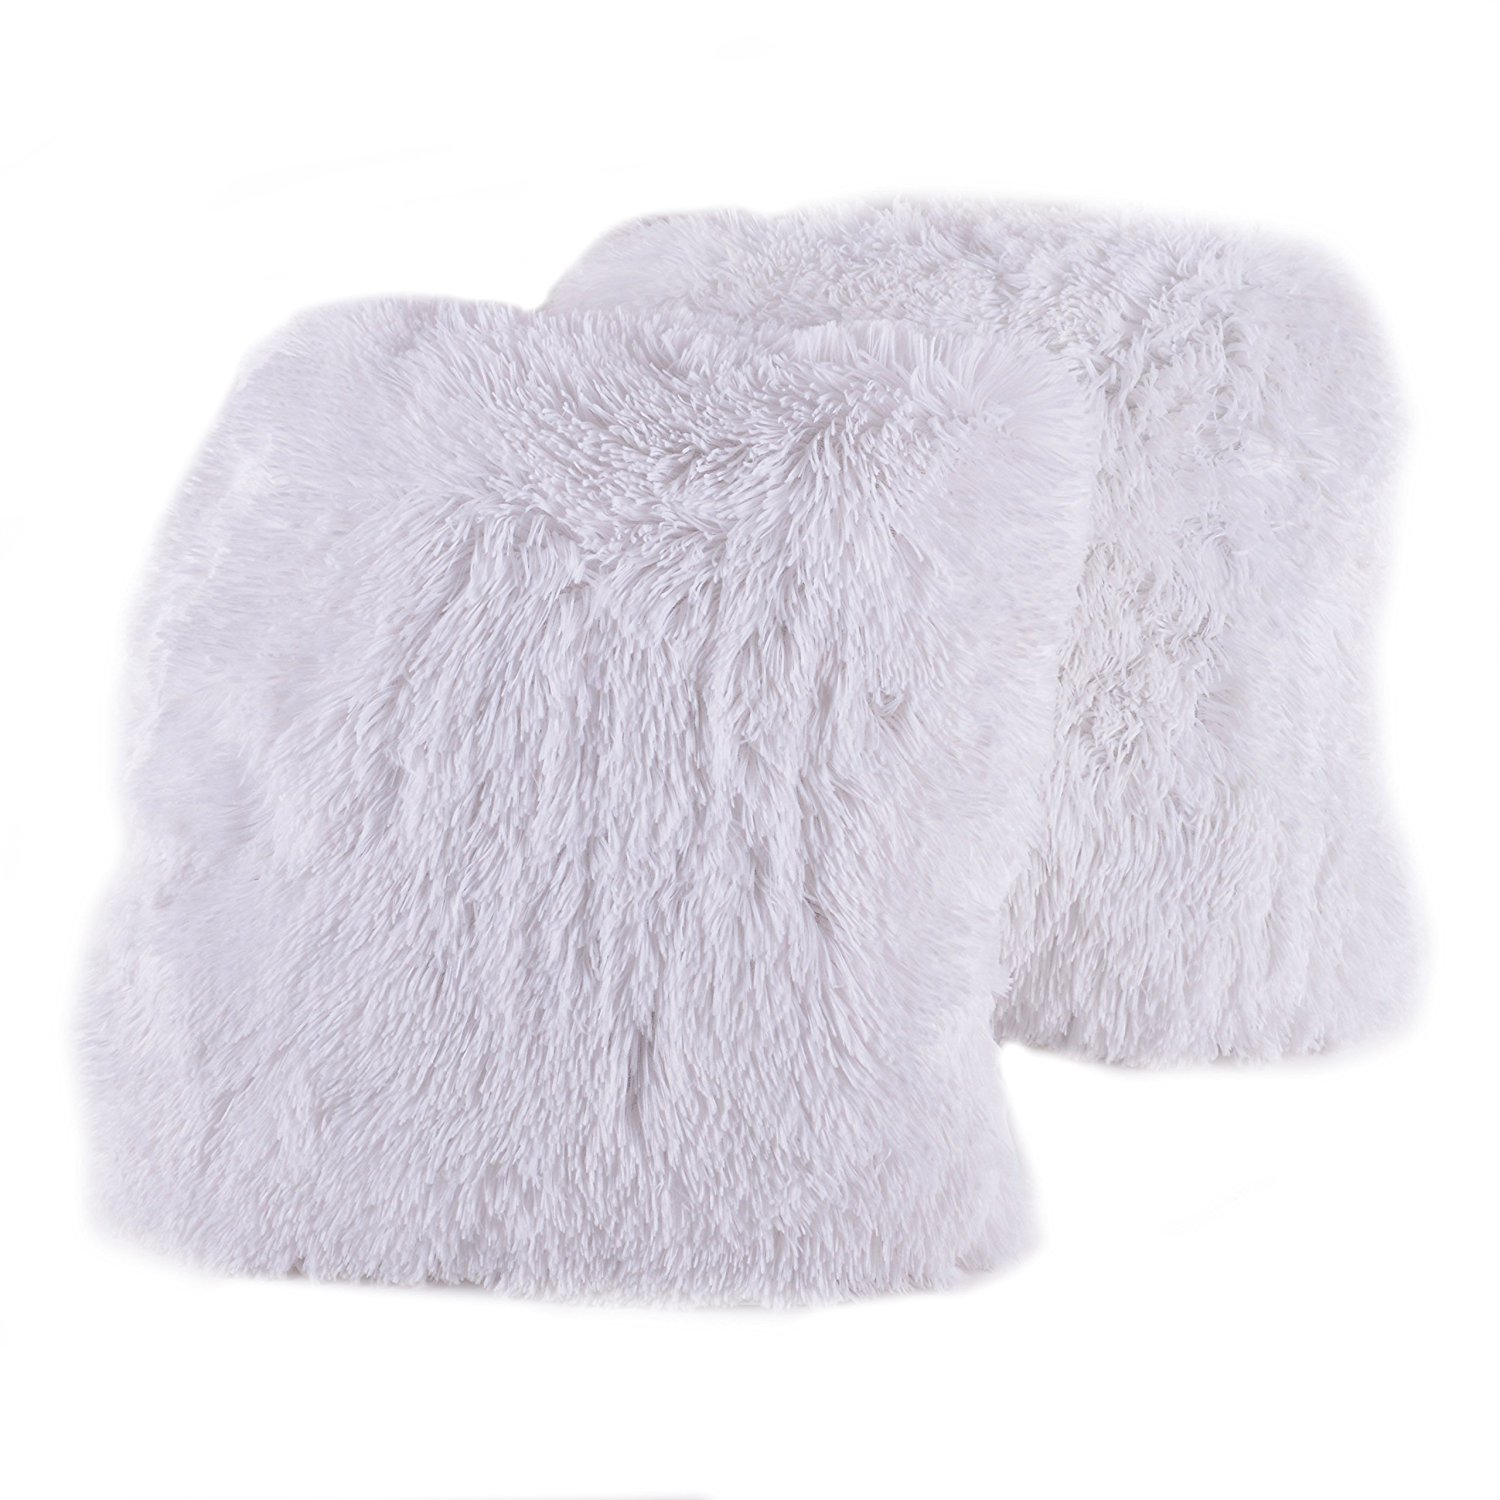 Sweet Home Collection Plush Pillow Faux Fur Soft and Comfy Throw Pillow (2 Pack), White